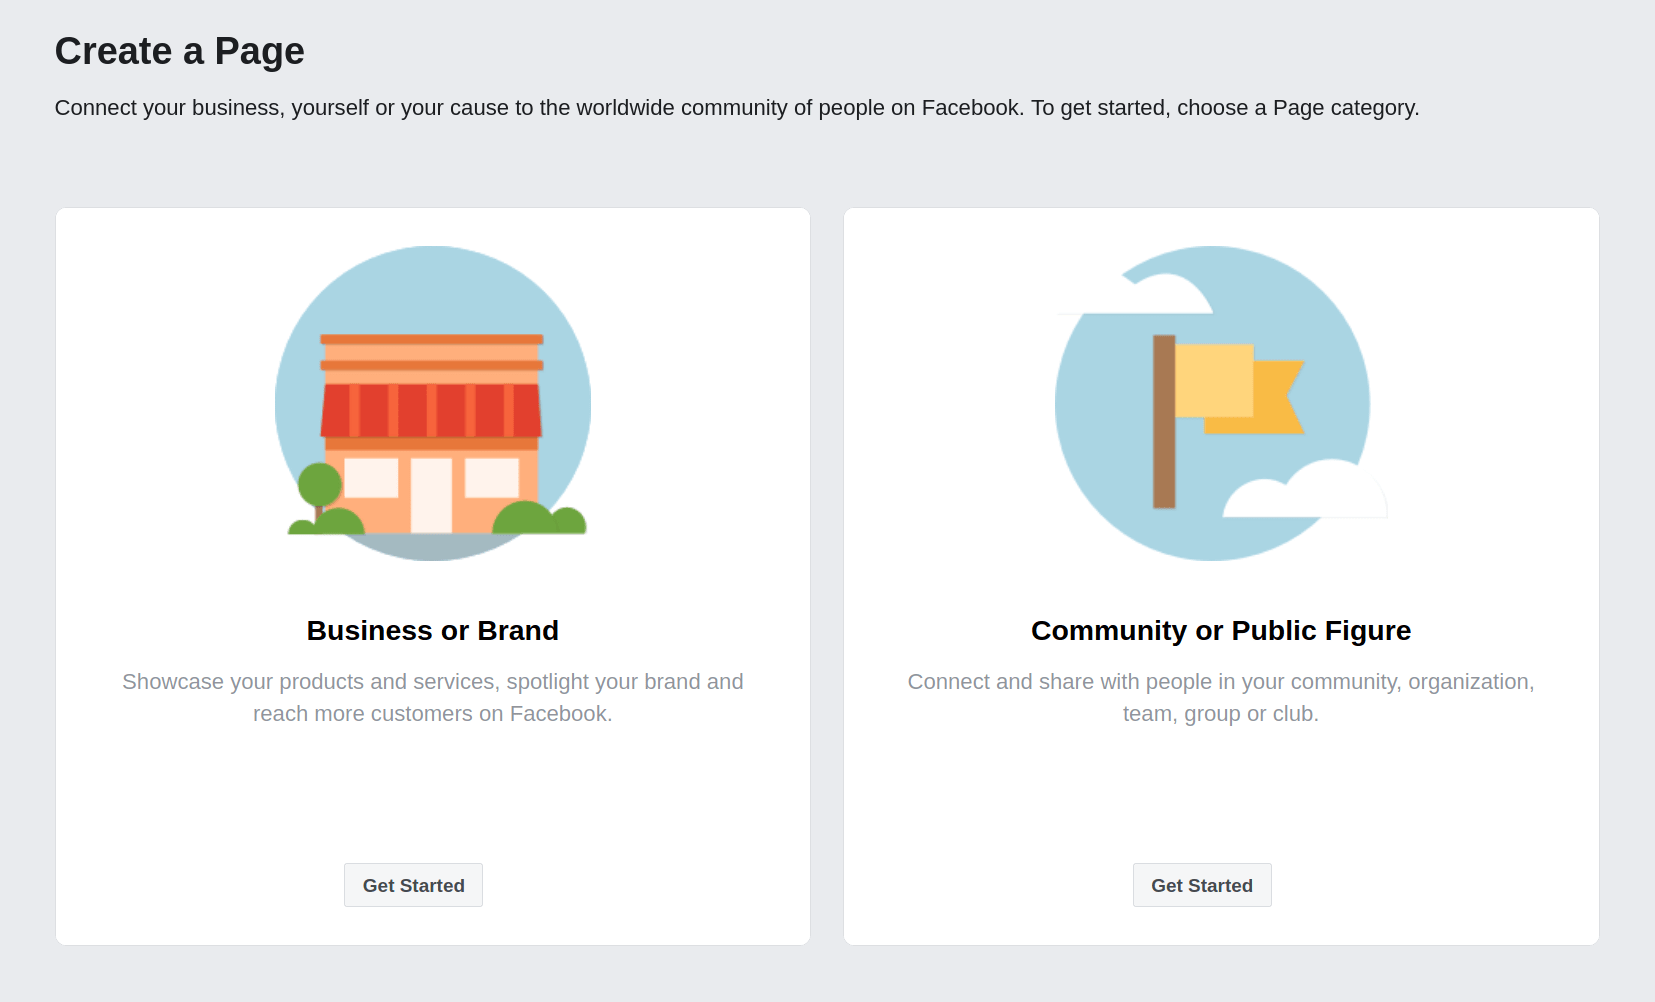 Decide on Facebook Page Type